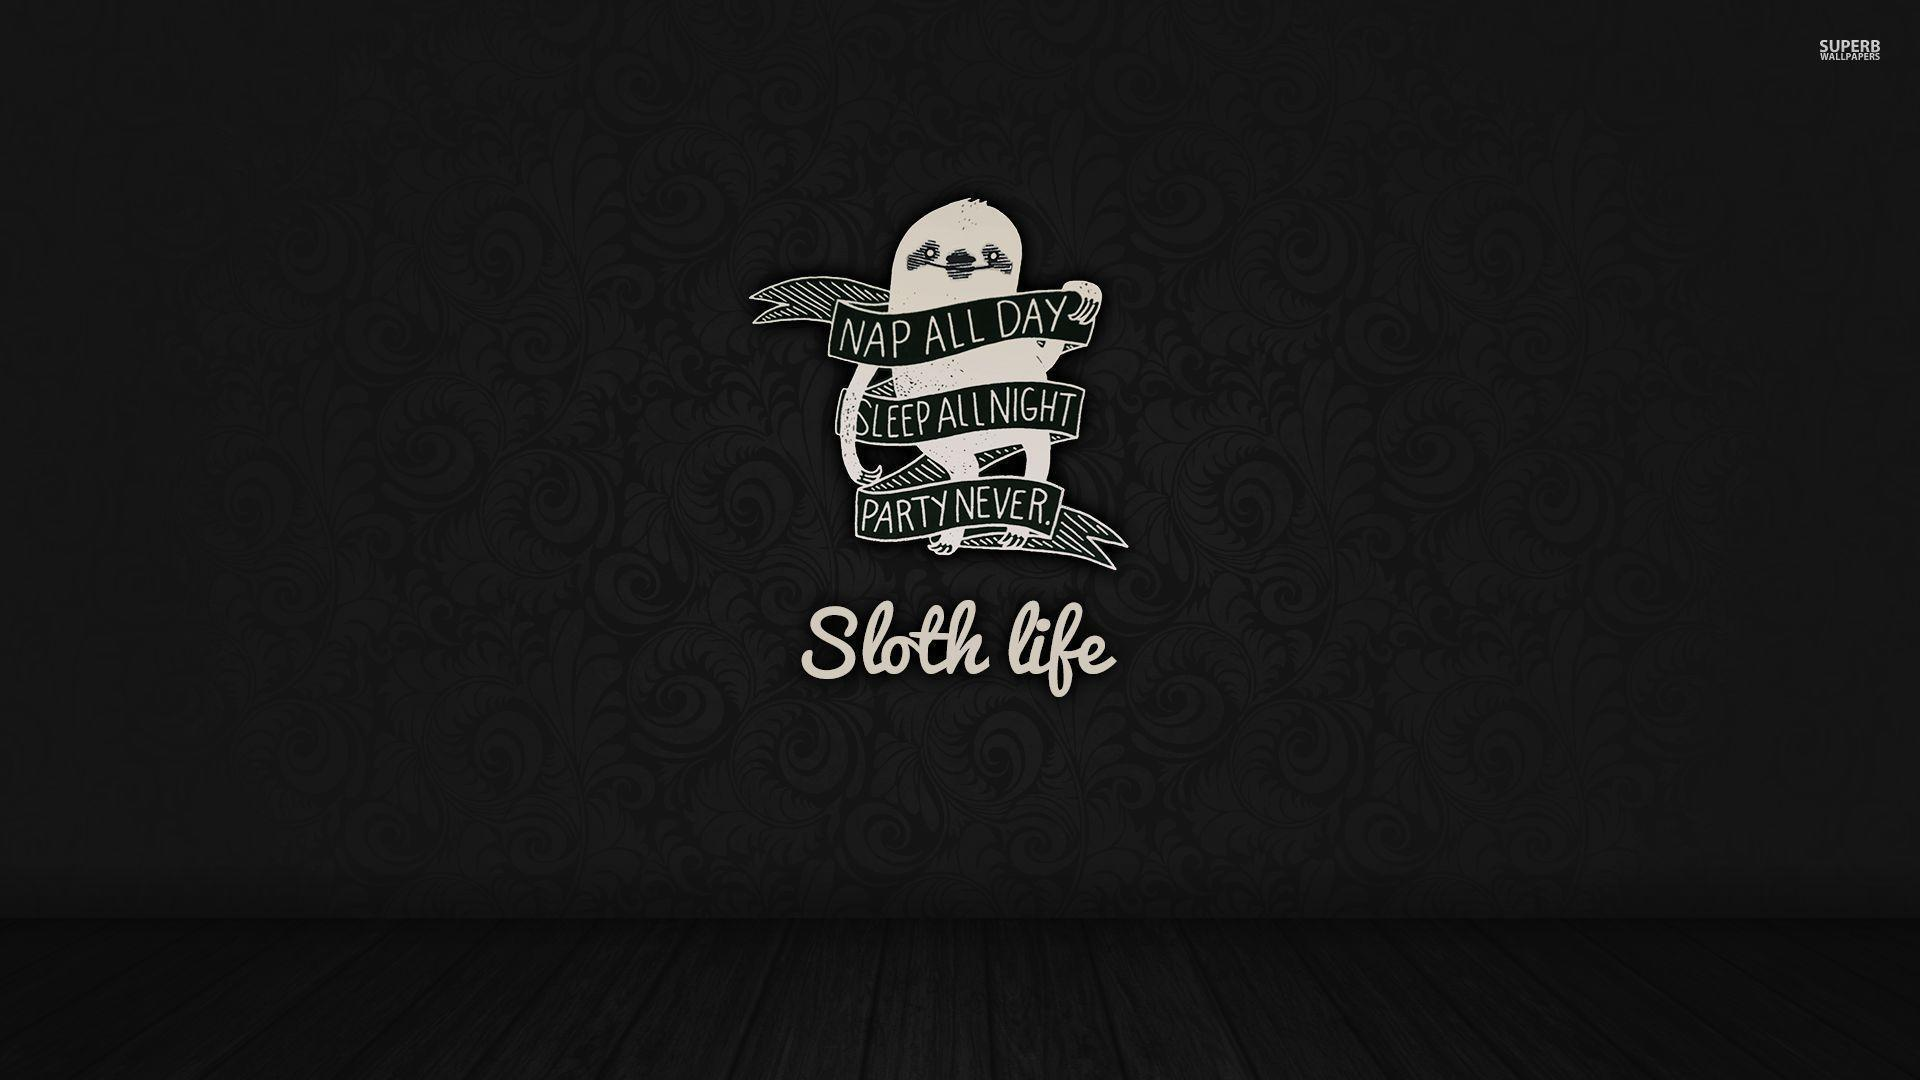 Sloth life wallpapers